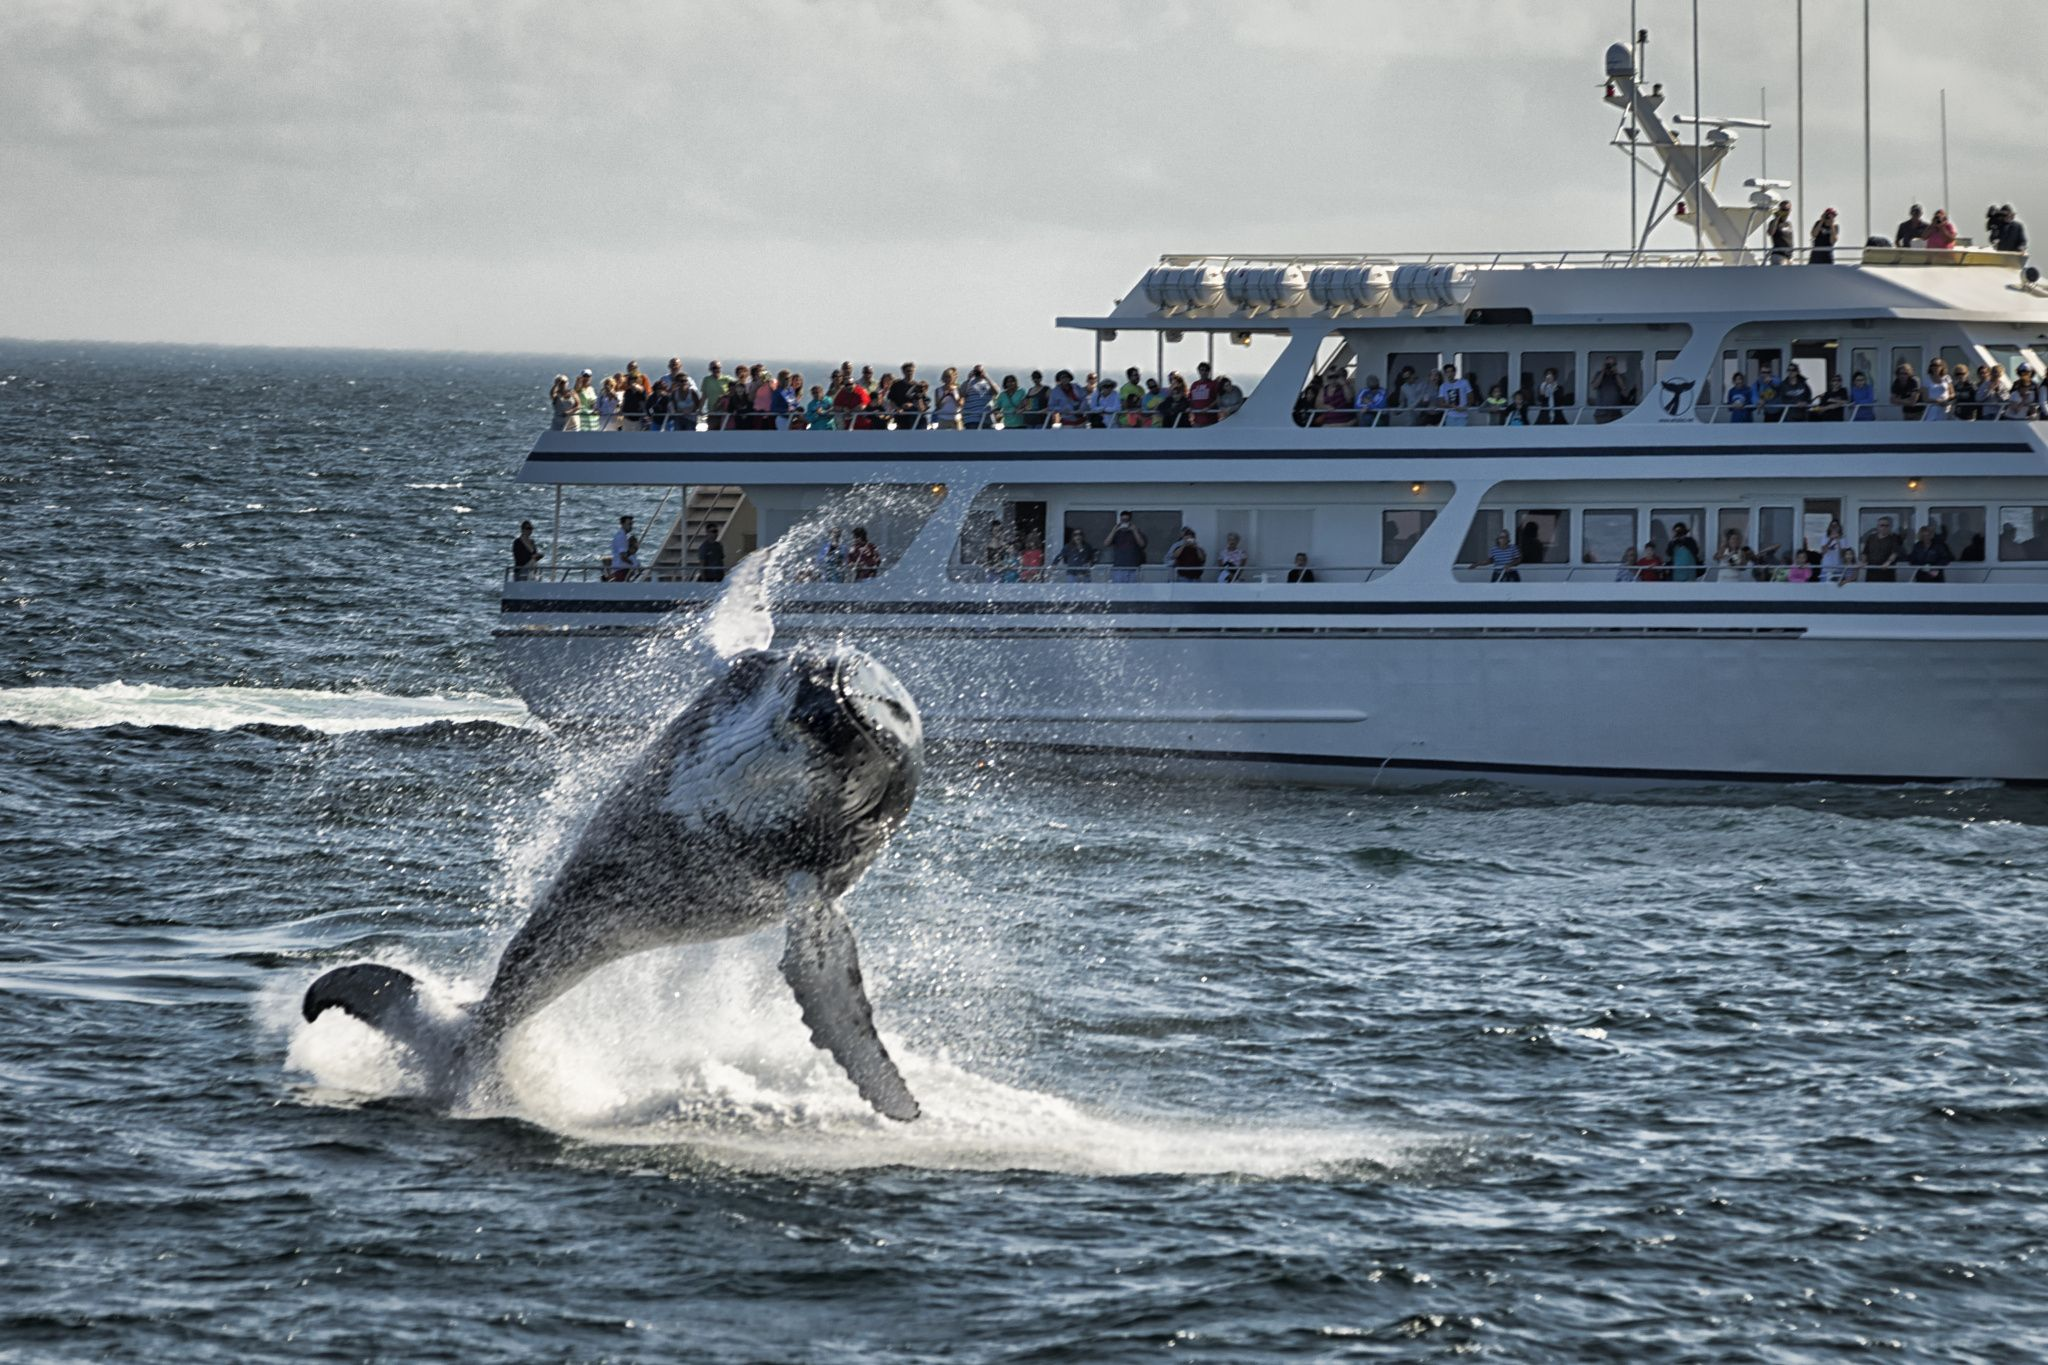 Whale breaching water. - Whale breaching water in front of a boat.